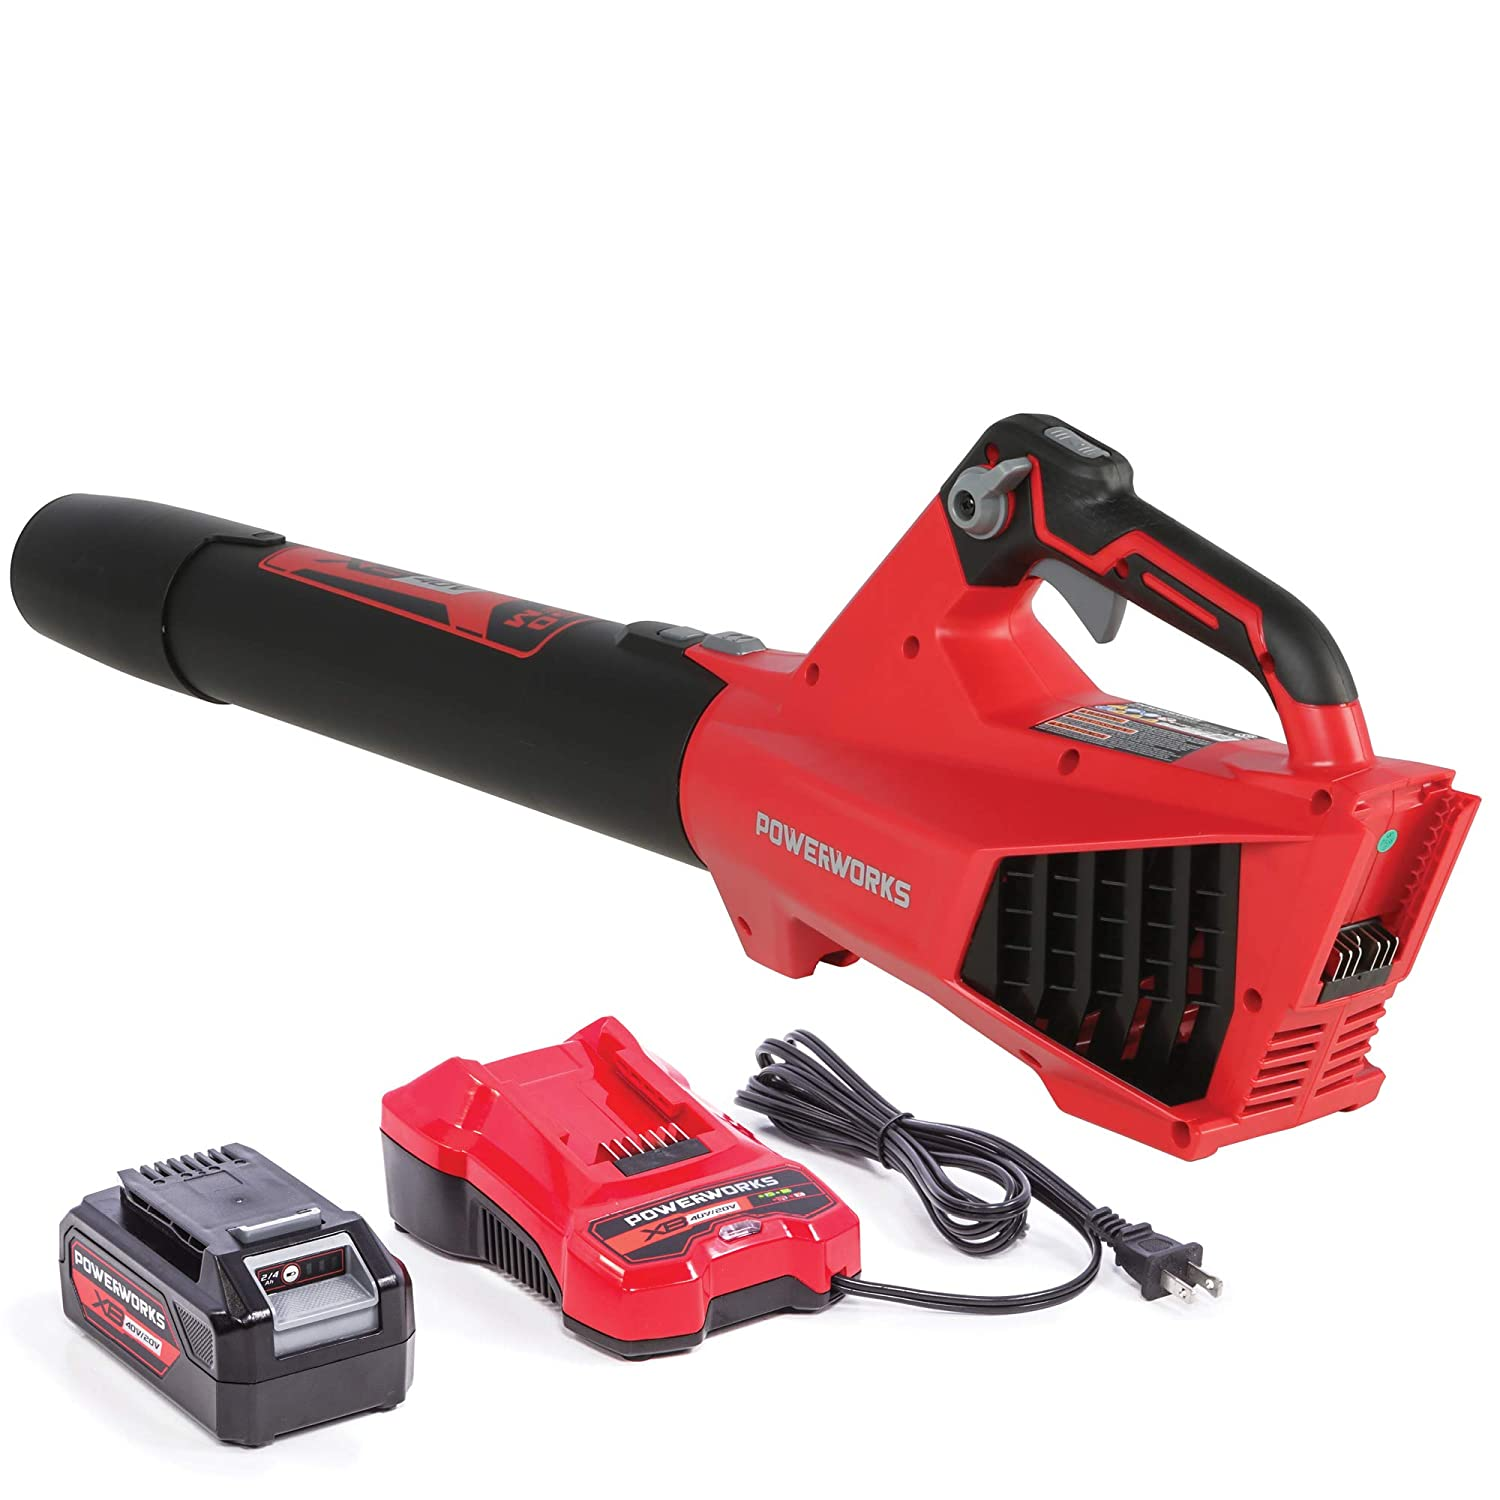 POWERWORKS XB 40V Cordless Axial Leaf Blower, 120 MPH 450 CFM, 2Ah Battery and Charger Included BLP302, Red Black